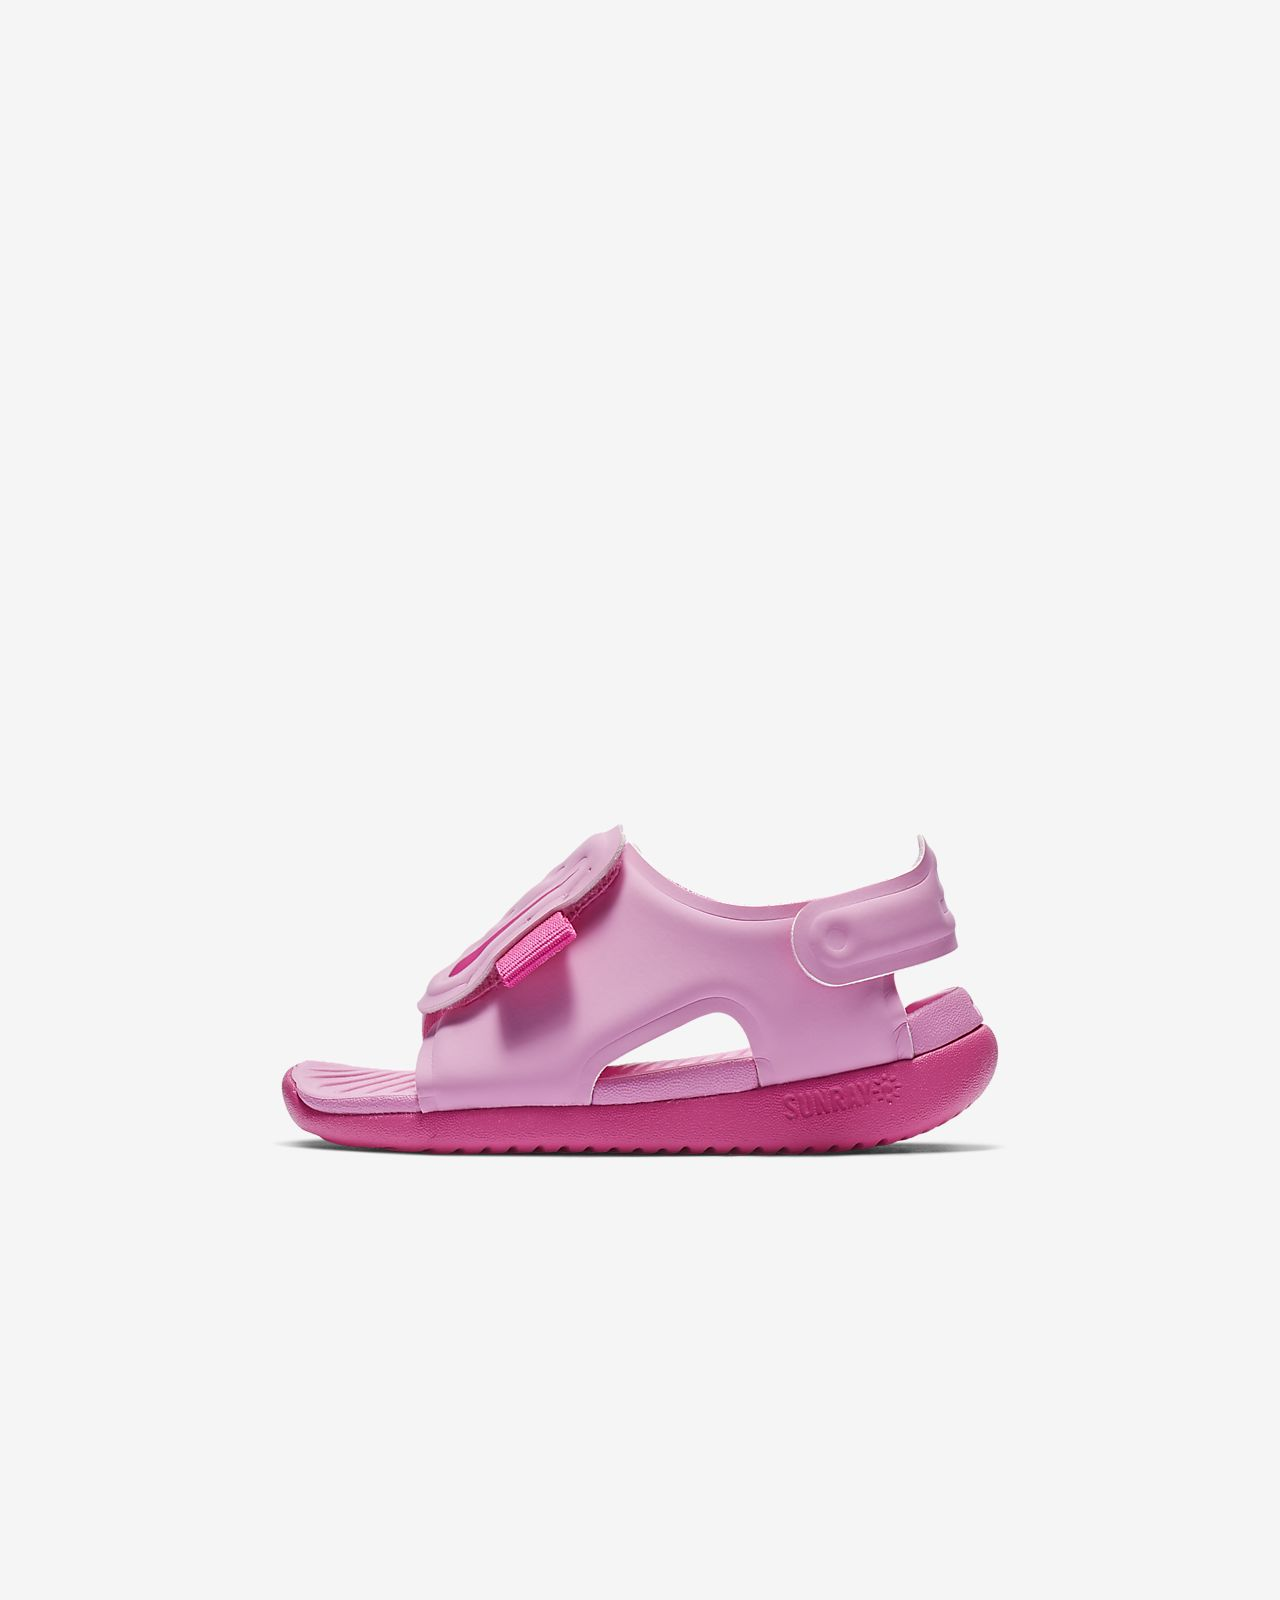 Nike Sunray Adjust 5 Baby  amp  Toddler Sandal. Nike.com AT f97d6ca60